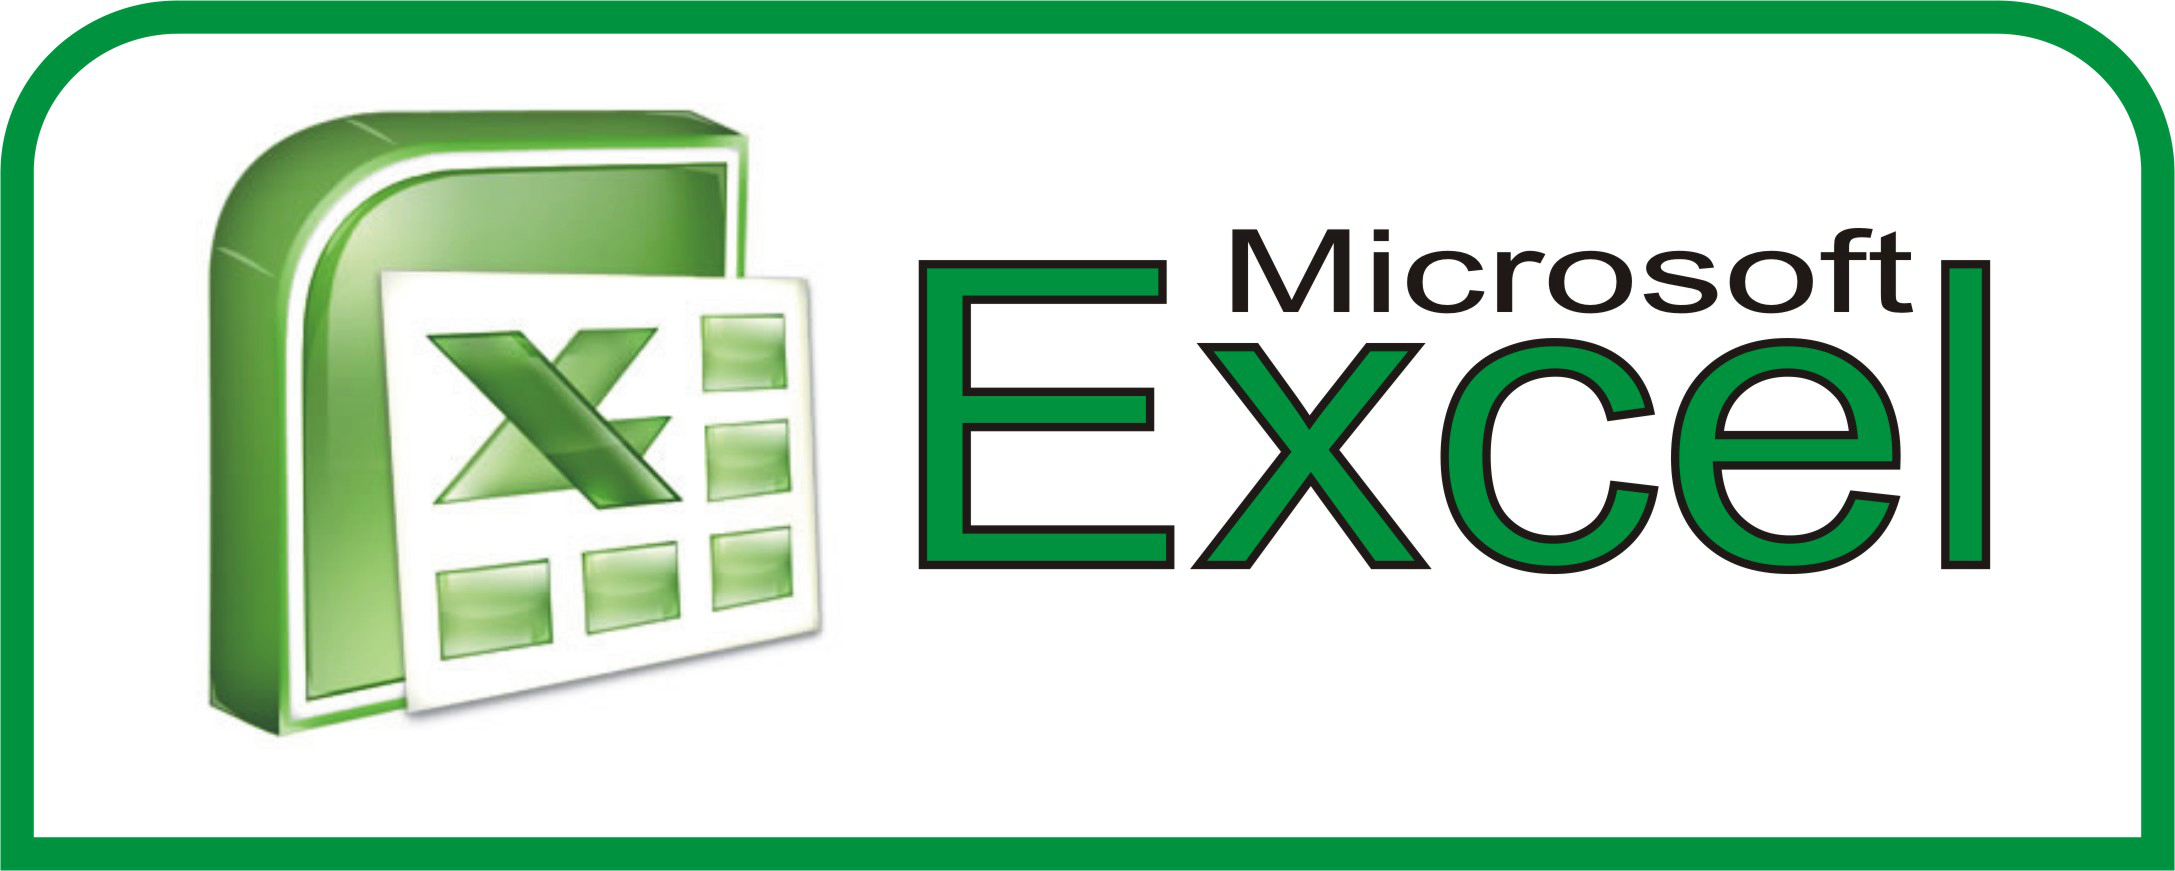 Ediblewildsus  Nice  Excel Shortcuts You Probably Didnt Know About  Techdissected With Extraordinary Calculating Roi In Excel Besides Excel Information Furthermore How To Make An Invoice On Excel With Appealing Excel Difference Function Also Excel Summary Table In Addition Visual Basic Editor Excel And How To Freeze A Row On Excel As Well As Download Solver For Excel Additionally Creating Excel Charts From Techdissectedcom With Ediblewildsus  Extraordinary  Excel Shortcuts You Probably Didnt Know About  Techdissected With Appealing Calculating Roi In Excel Besides Excel Information Furthermore How To Make An Invoice On Excel And Nice Excel Difference Function Also Excel Summary Table In Addition Visual Basic Editor Excel From Techdissectedcom